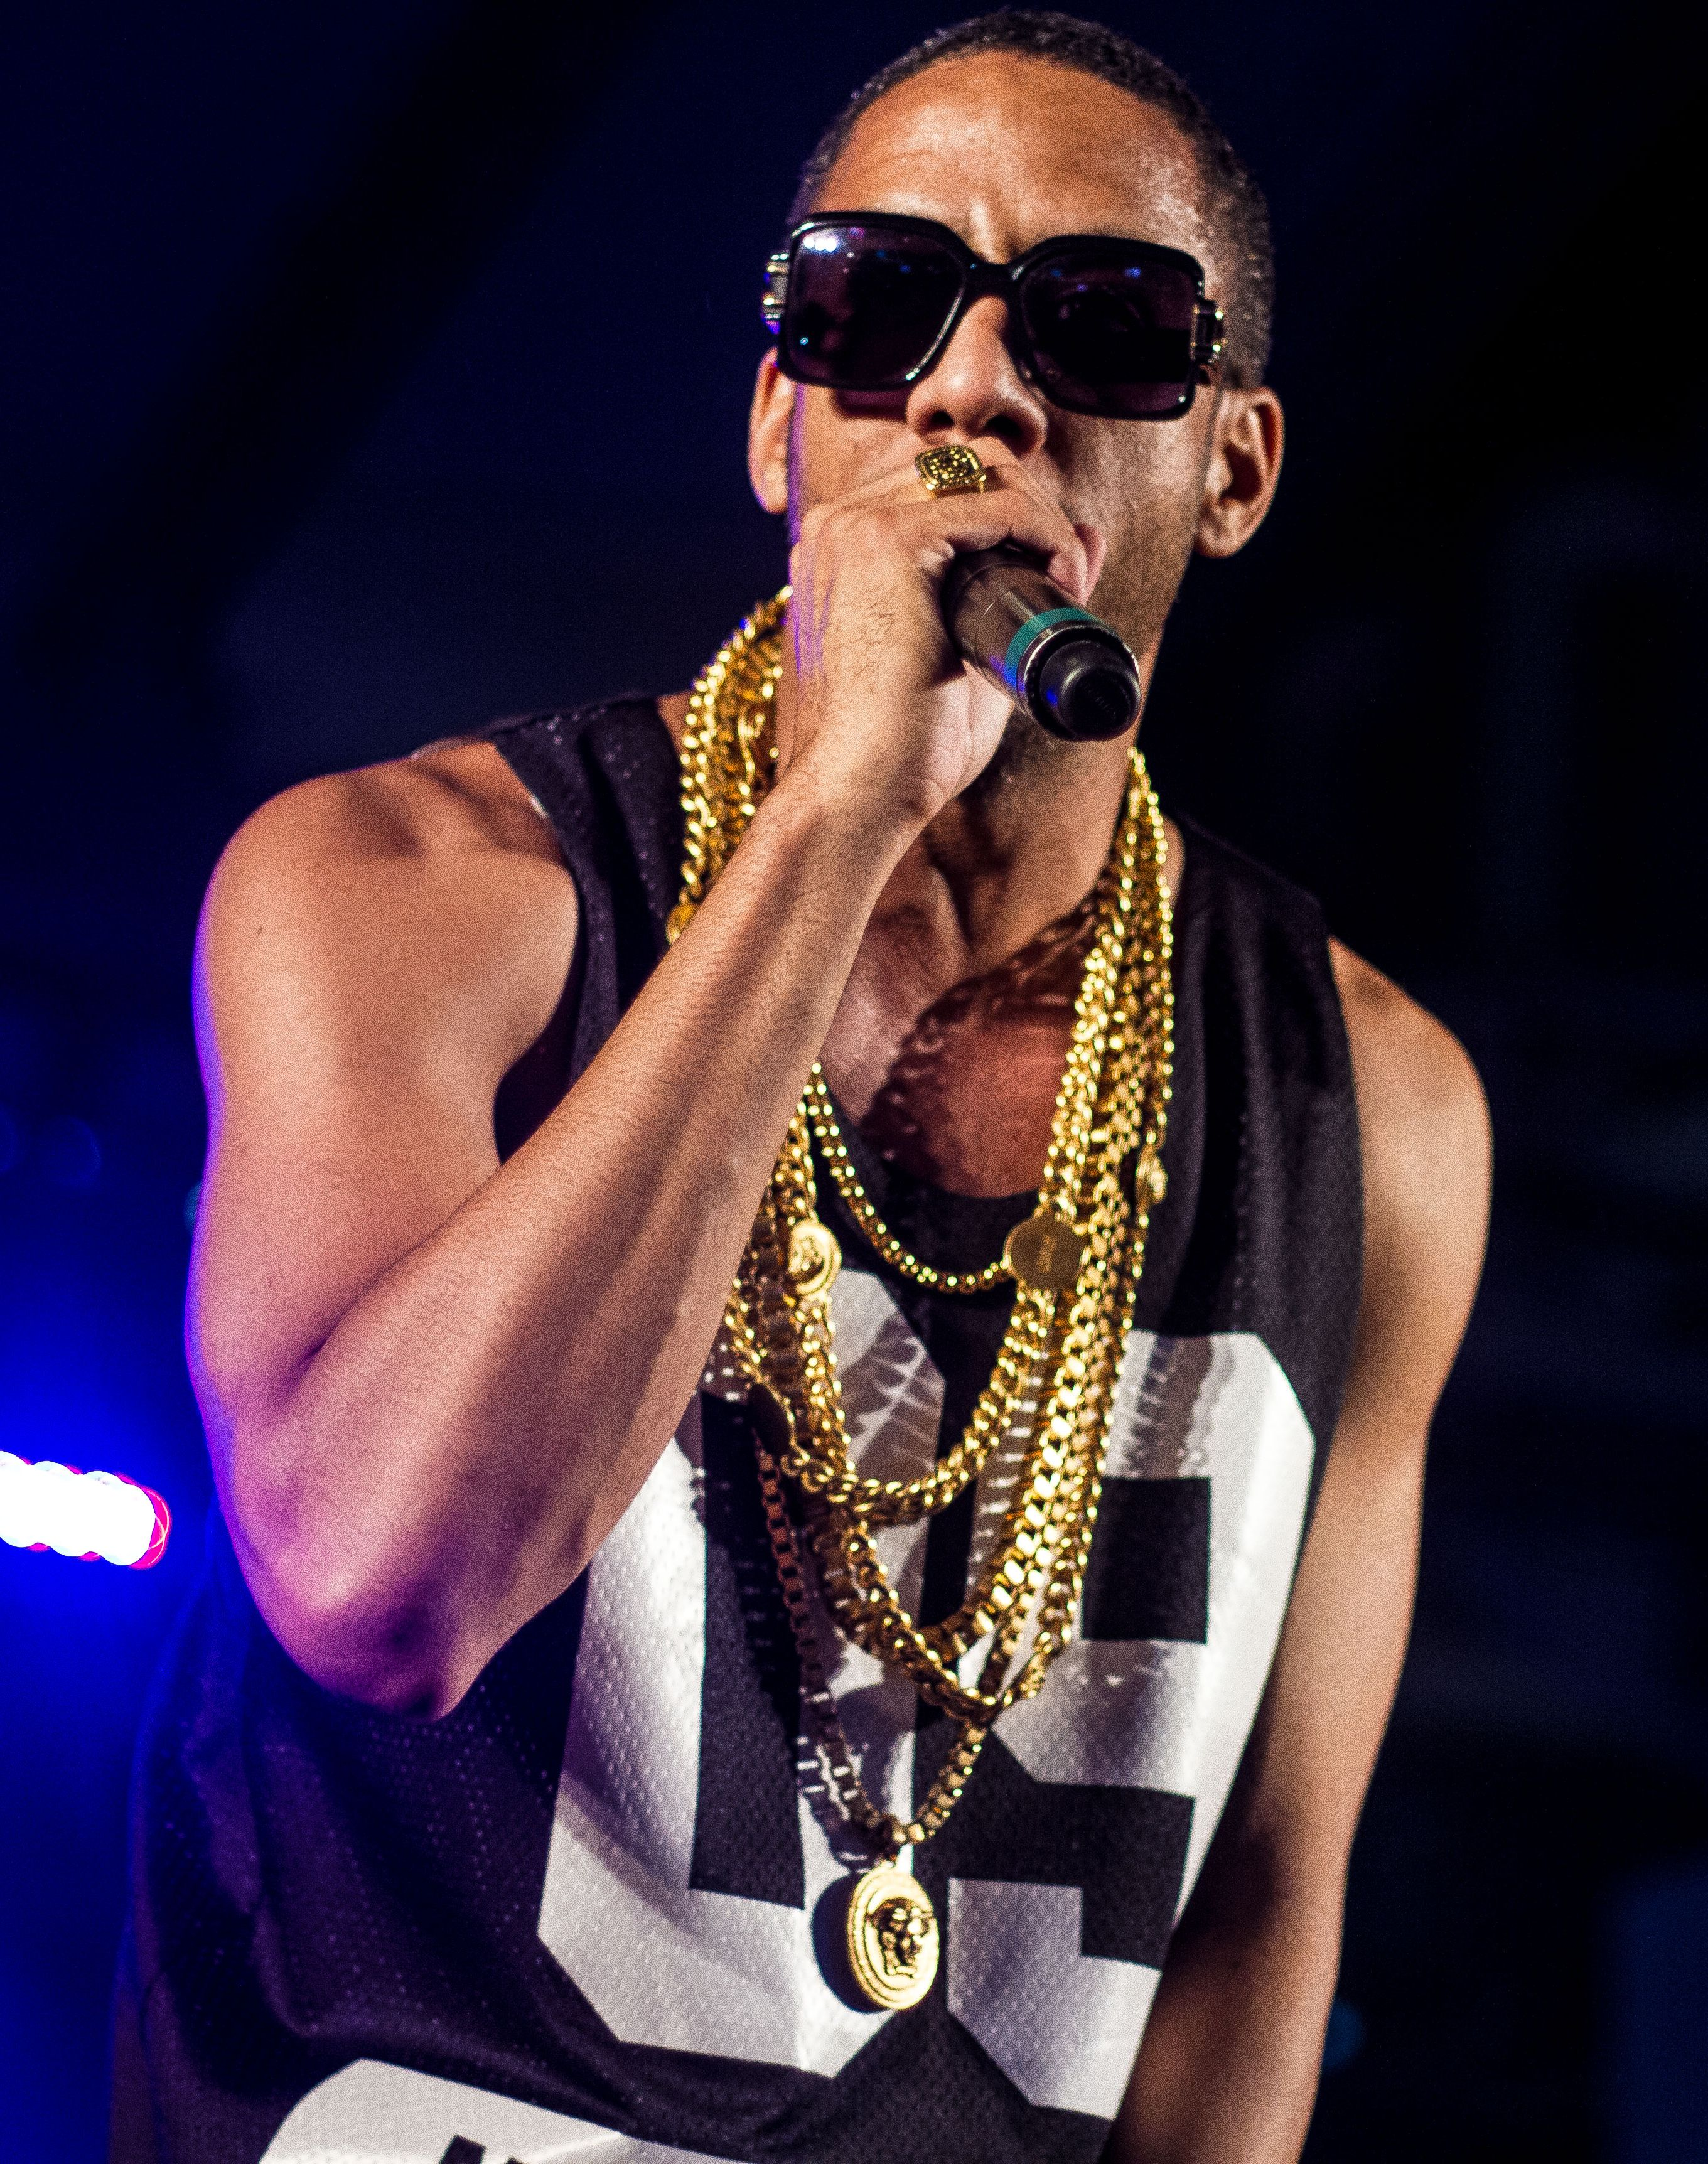 Ryan Leslie performing at the Manifesto 8th Year (2014) in Toronto.